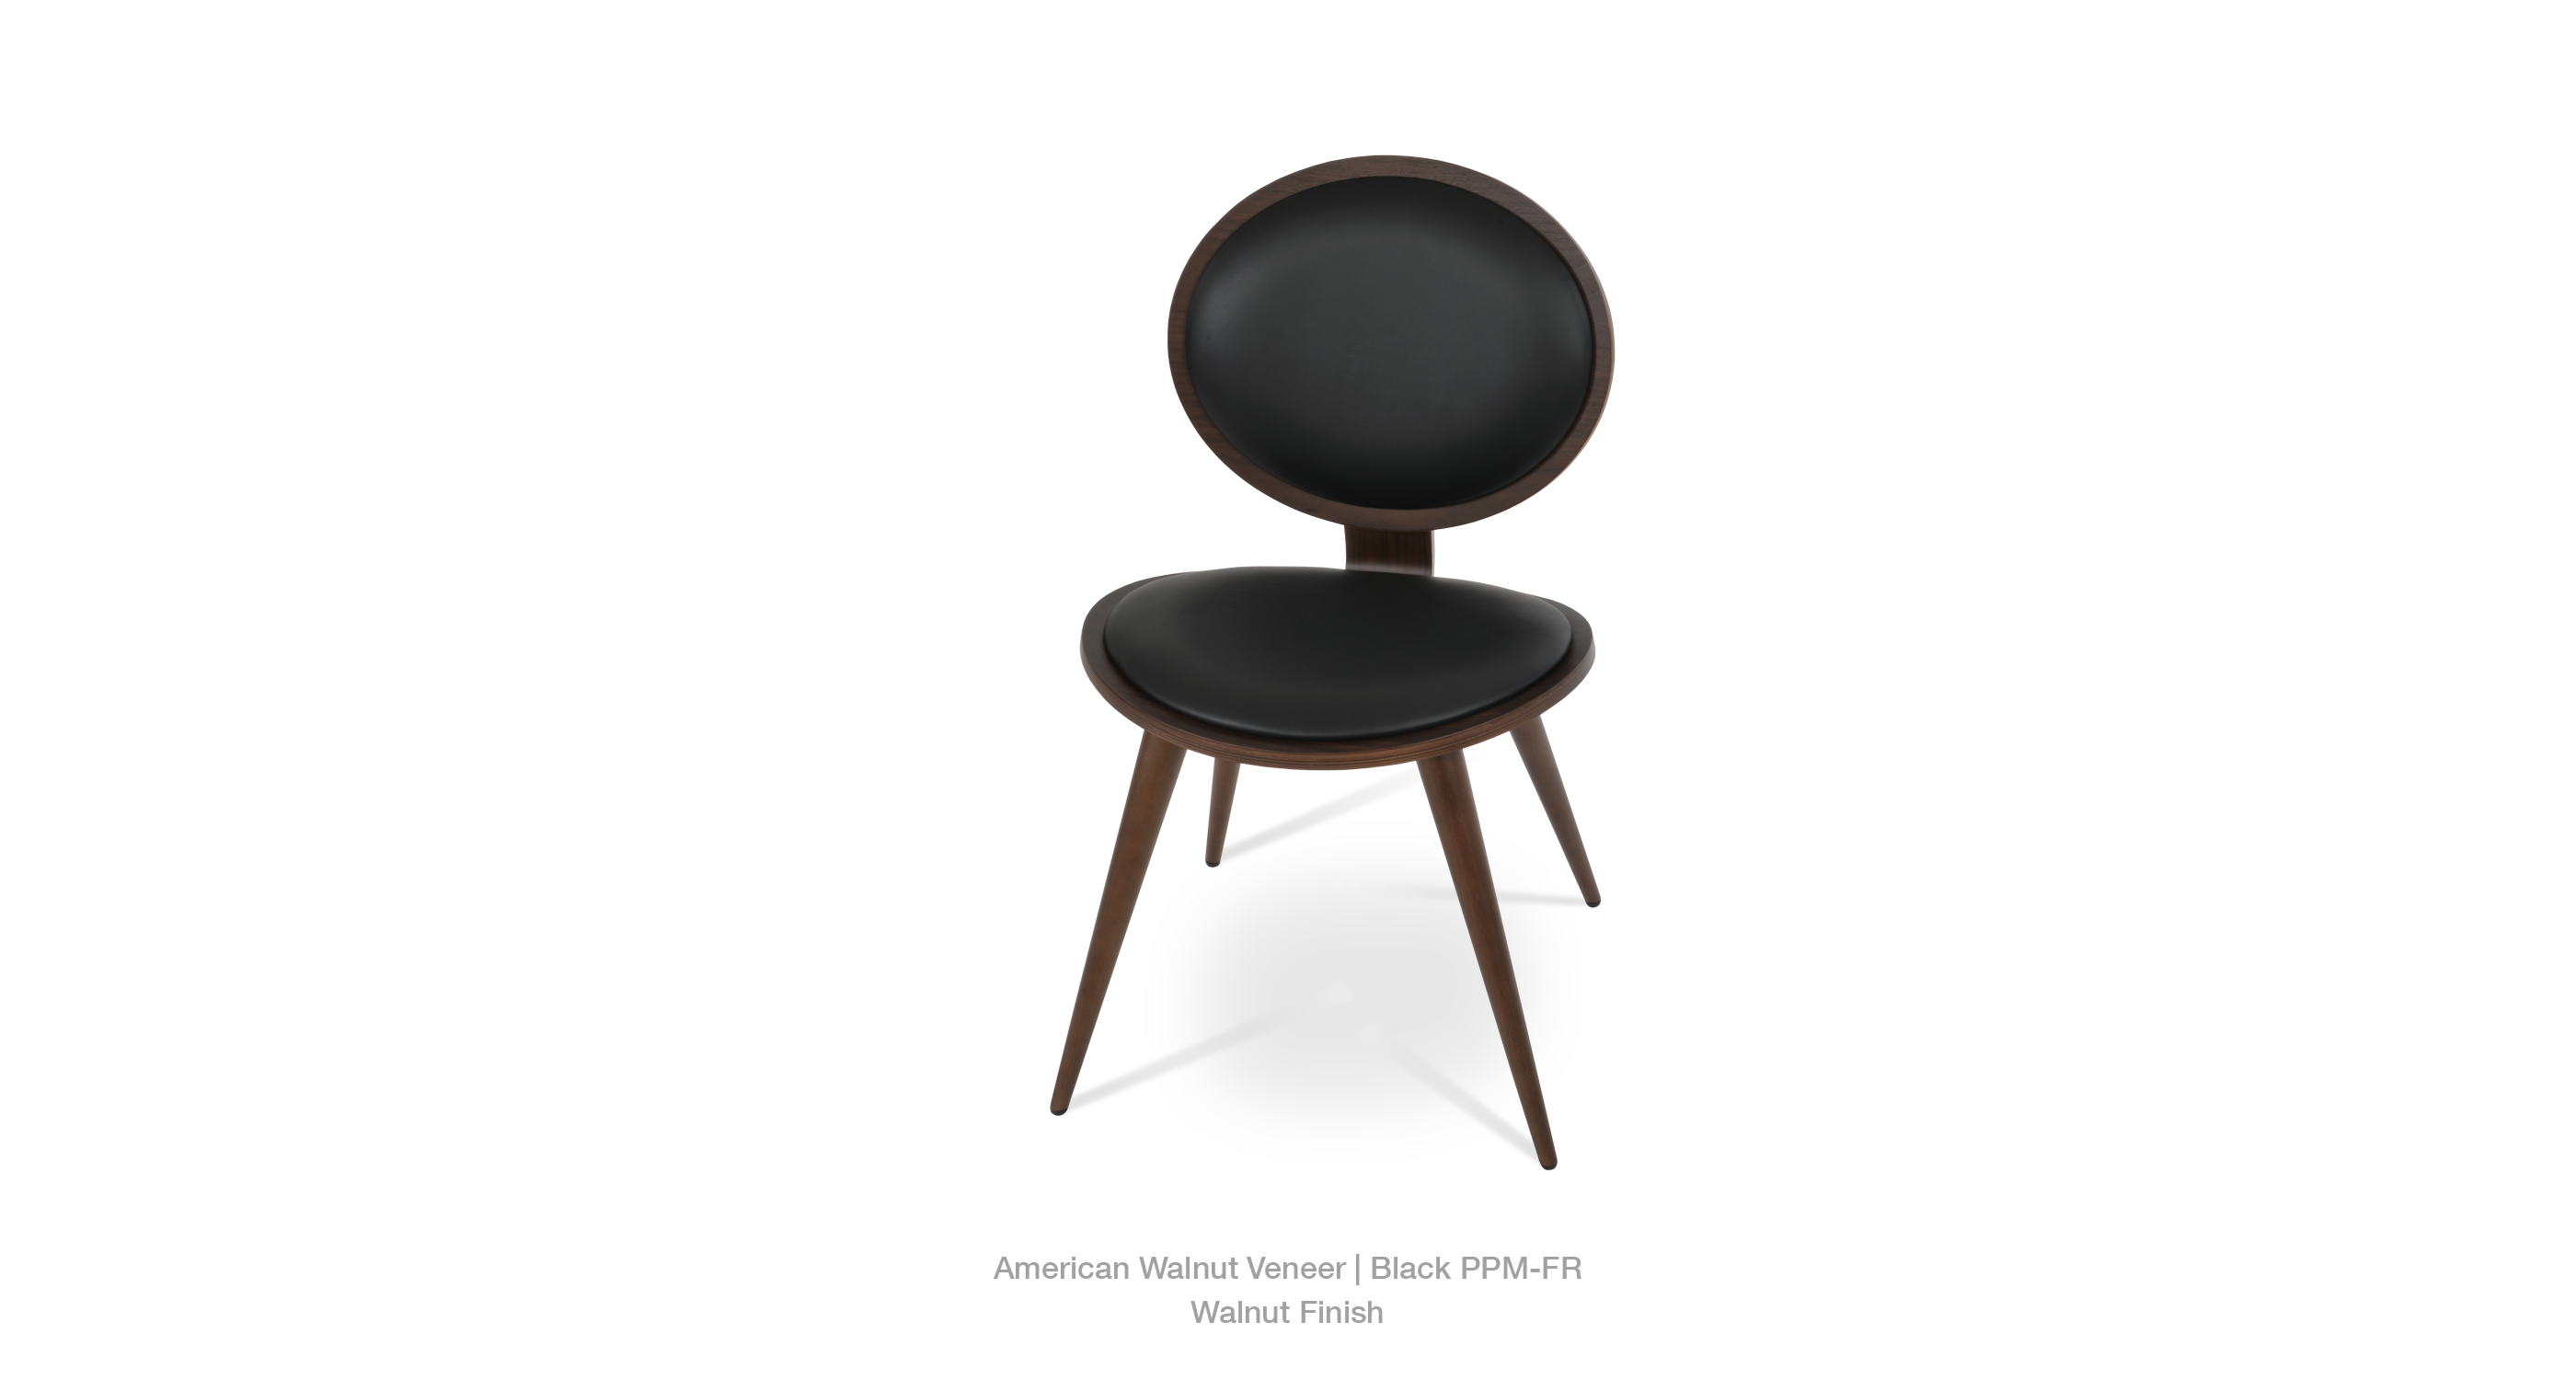 2020 03 23 Tokyo Dining Chair Black